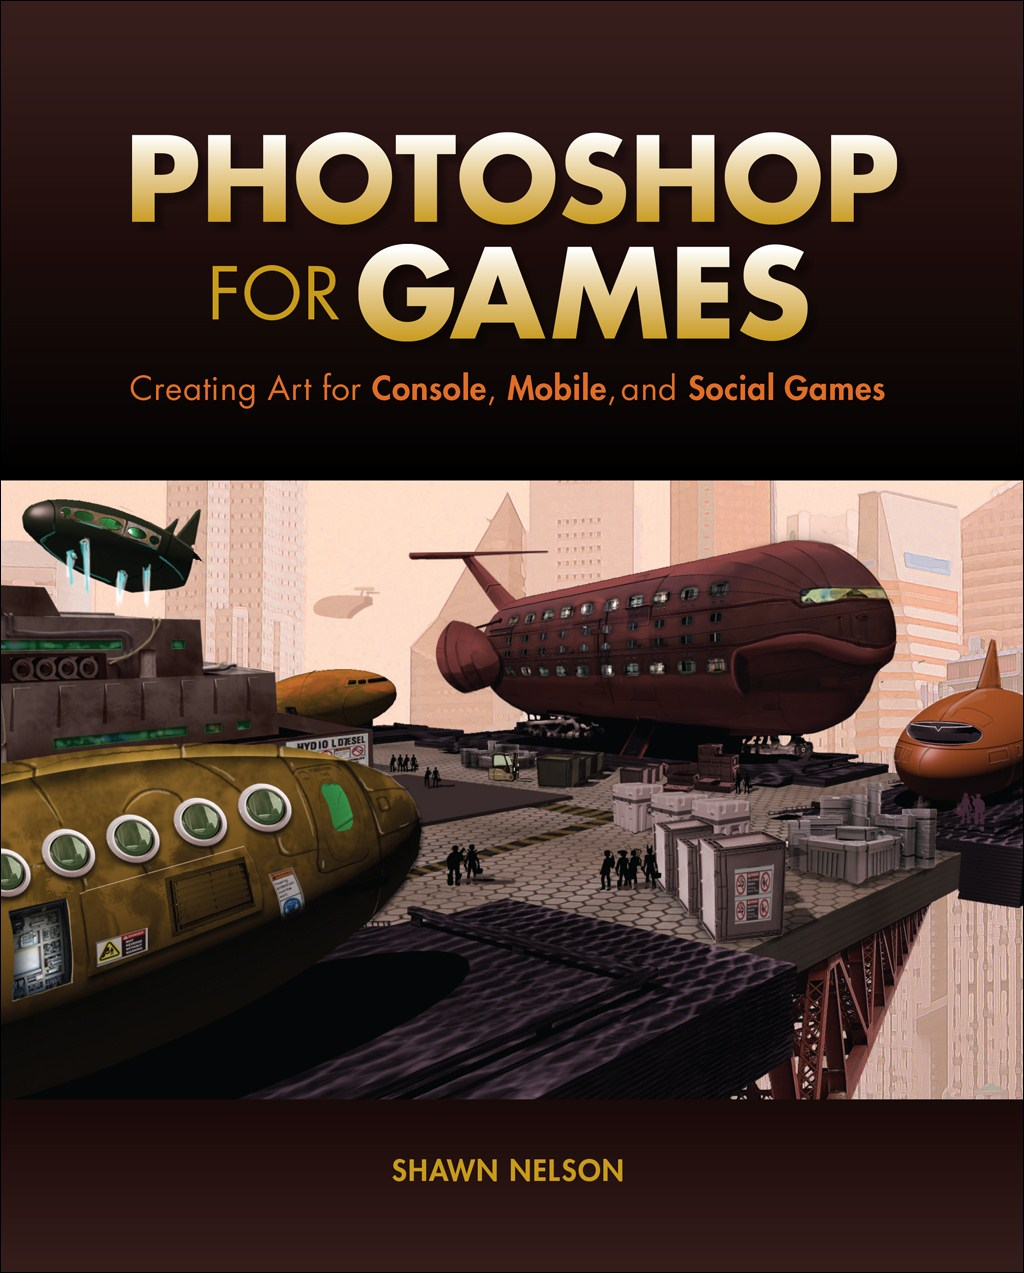 Photoshop for Games: Creating Art for Console, Mobile, and Social Games